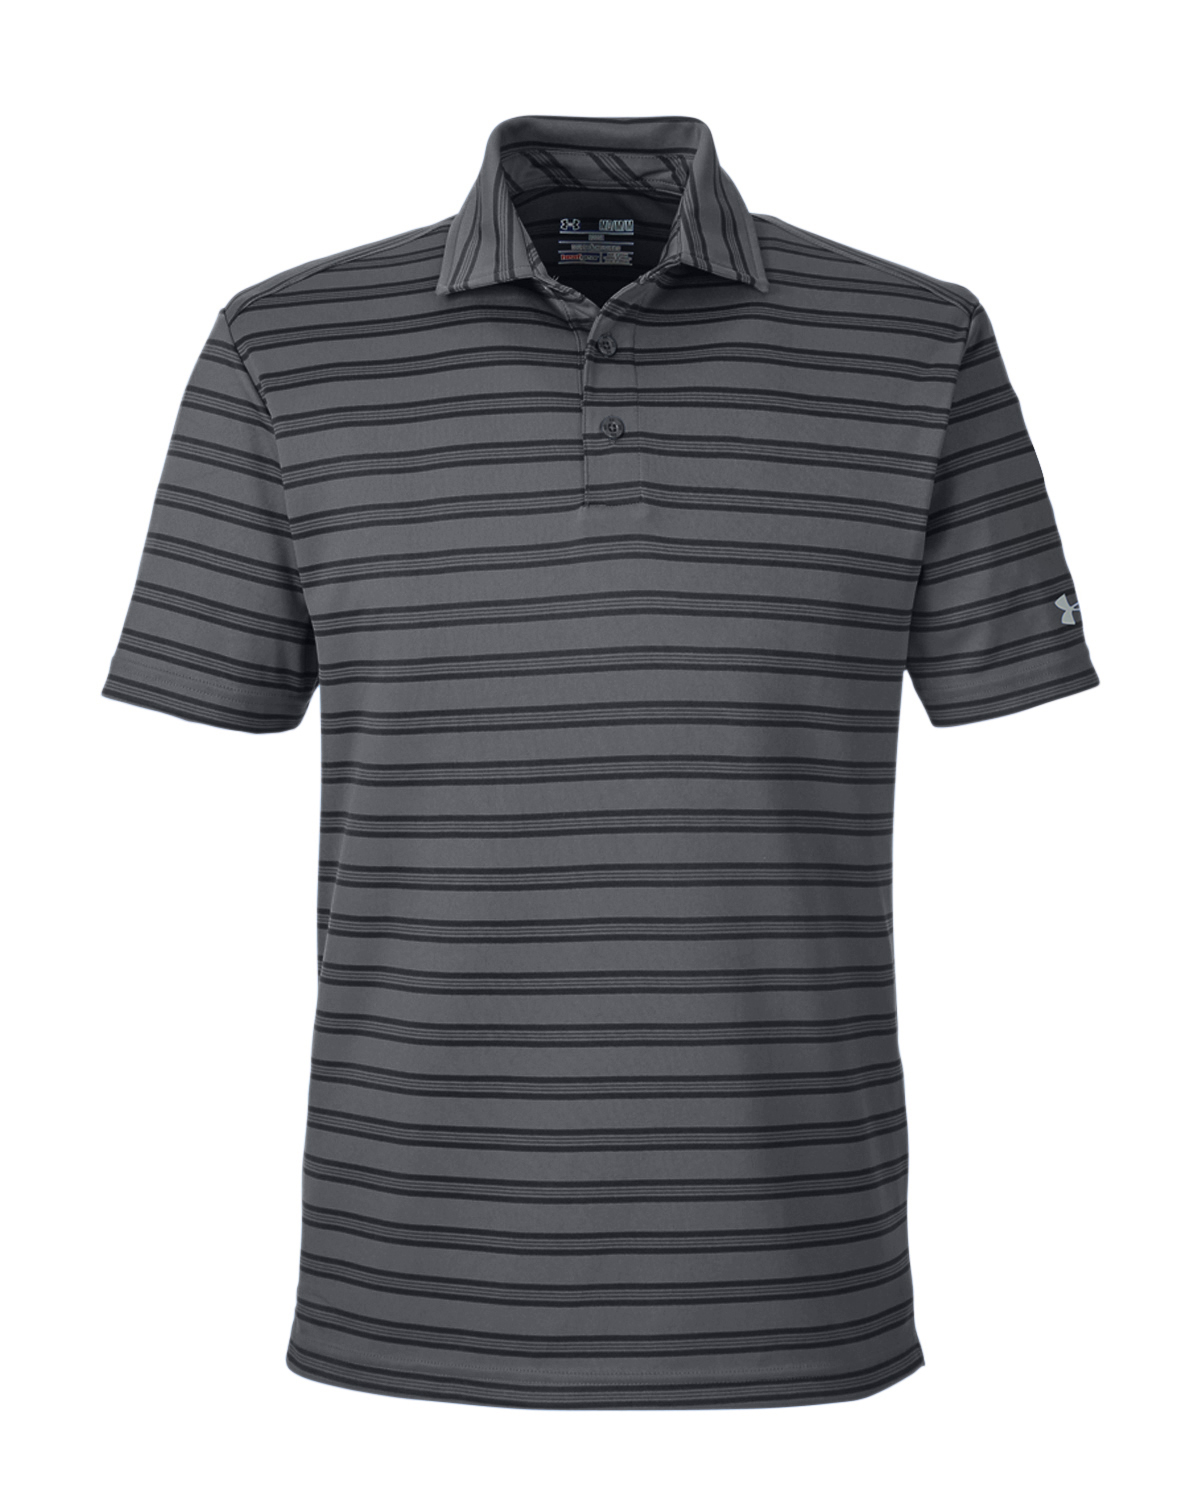 Under Armour 1283704 - Tech Stripe Polo